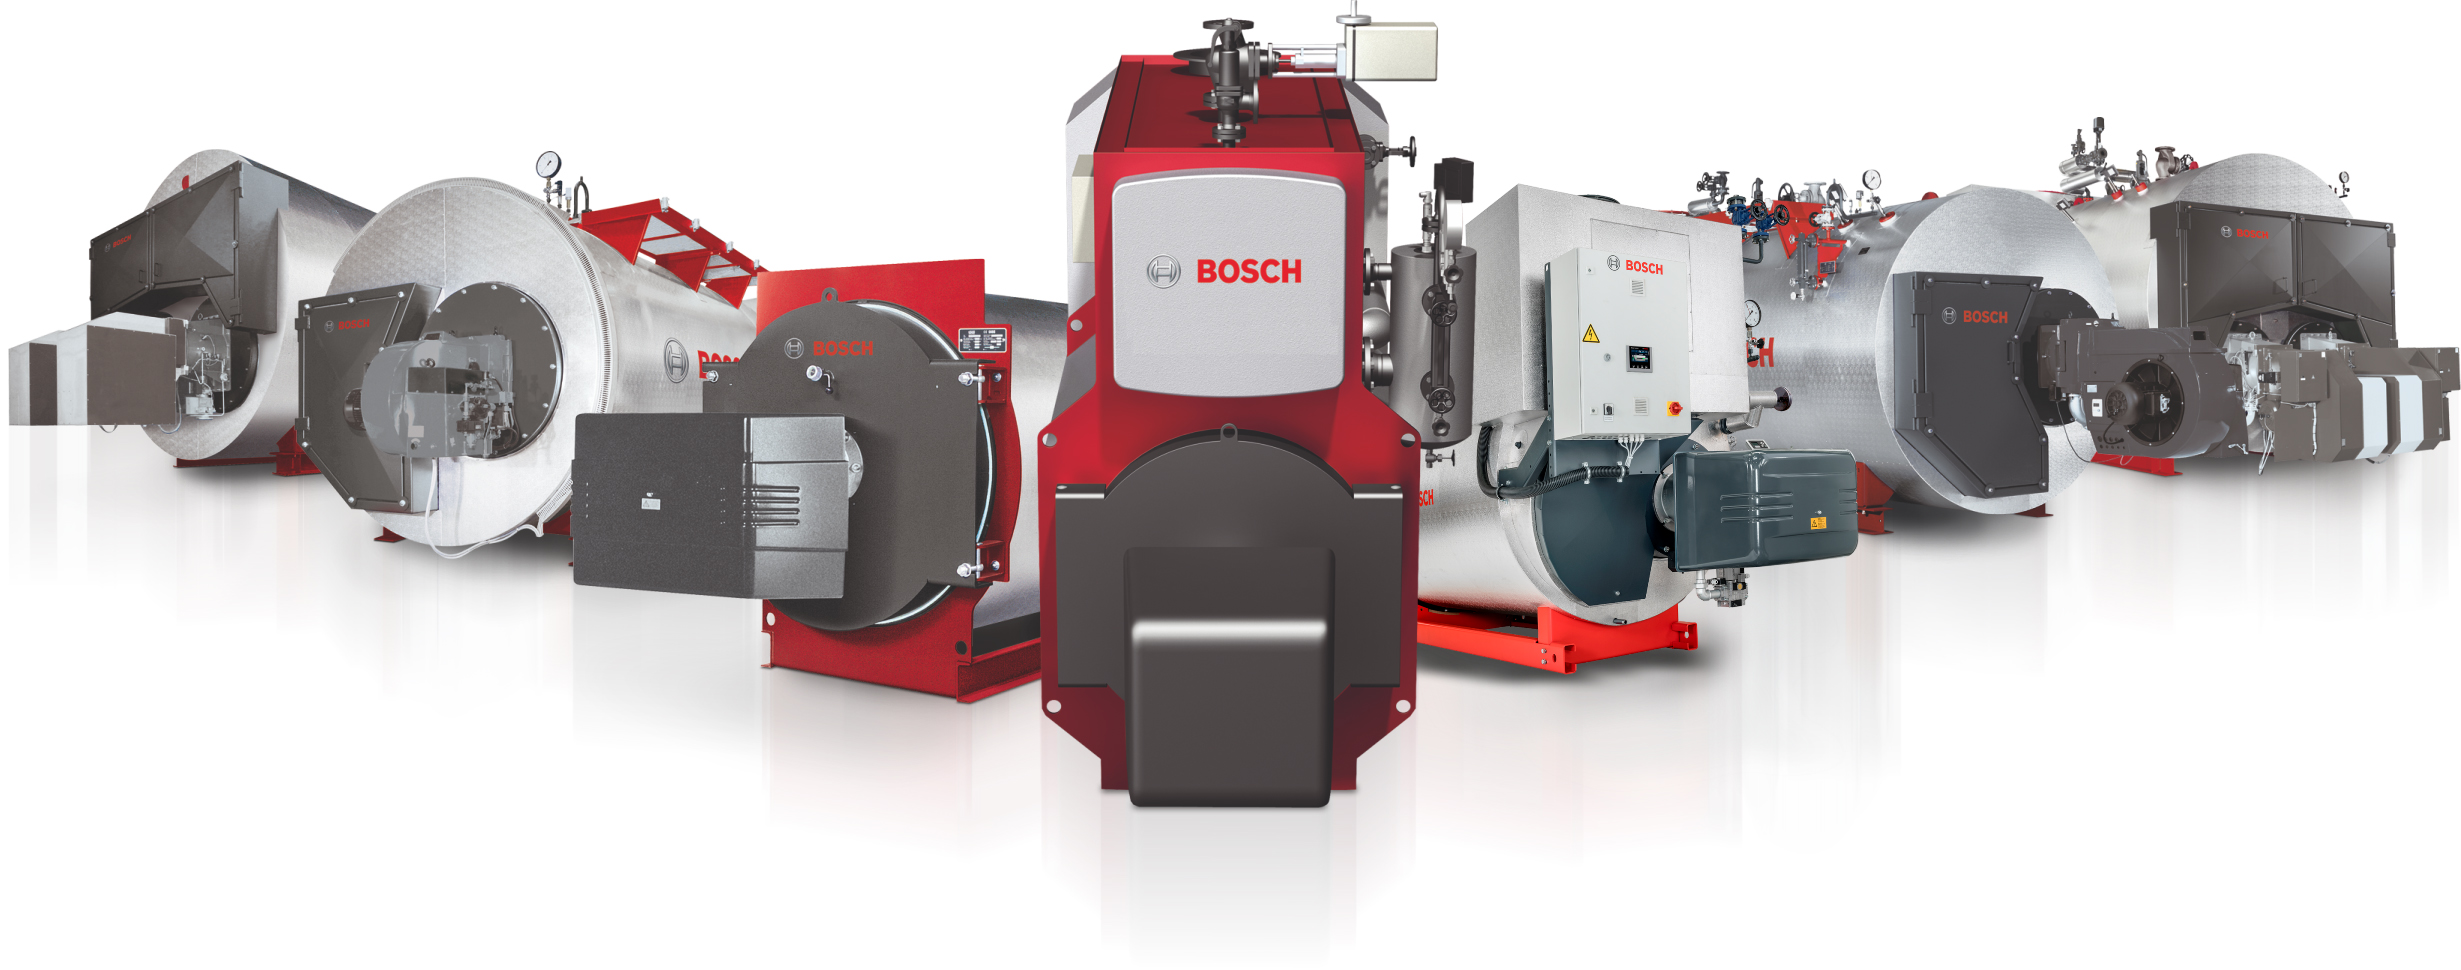 Product picture of Bosch hot water and heating boilers